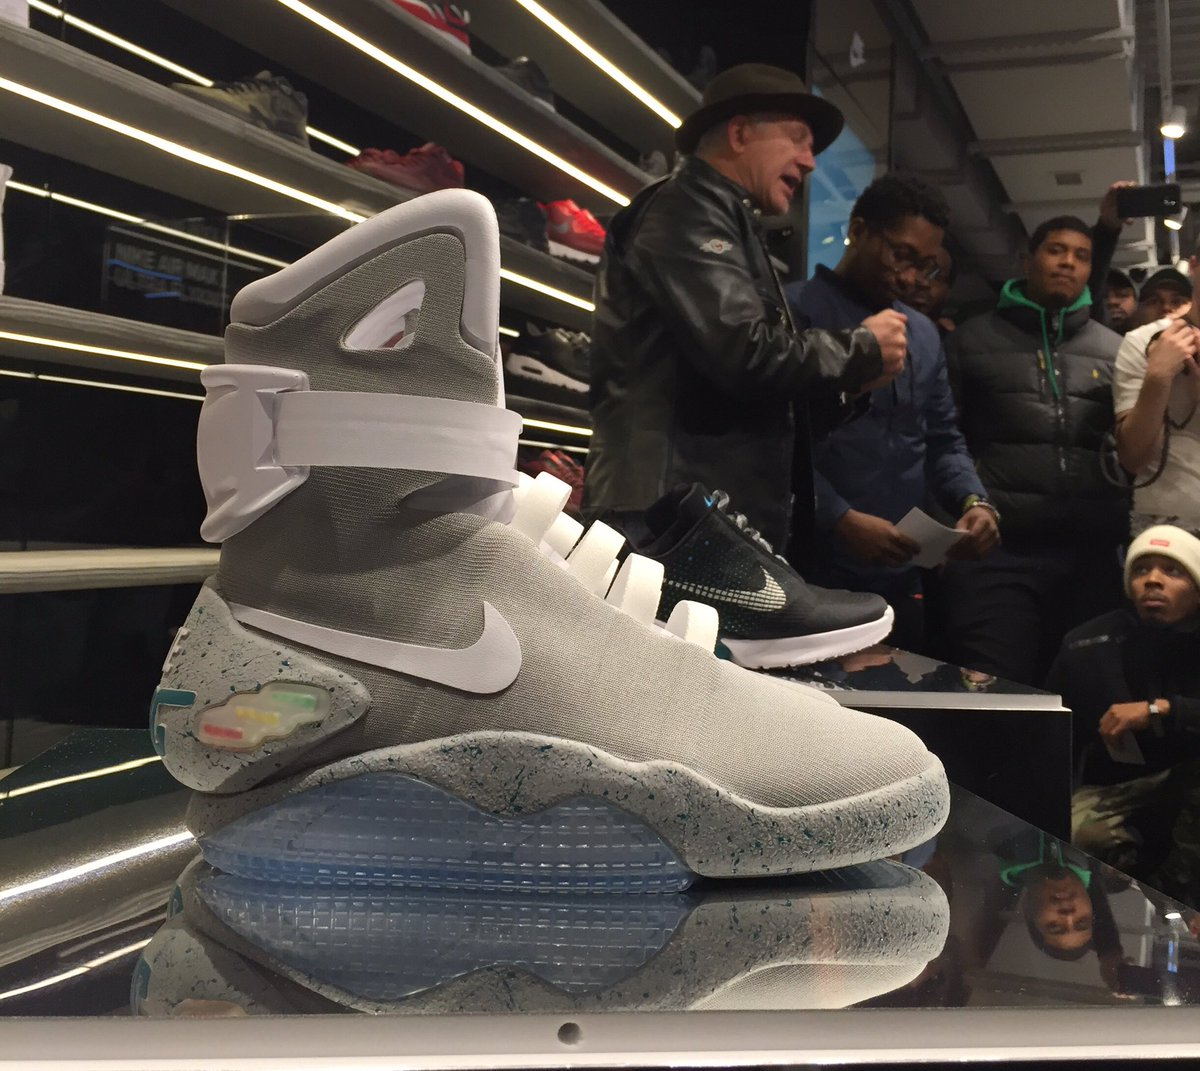 0fdf13a4d83c ... Original Nike Mag Design Sketches  The legend Tinker Hatfield talking Nike  Mags at Nike Soho now. See more on our ...